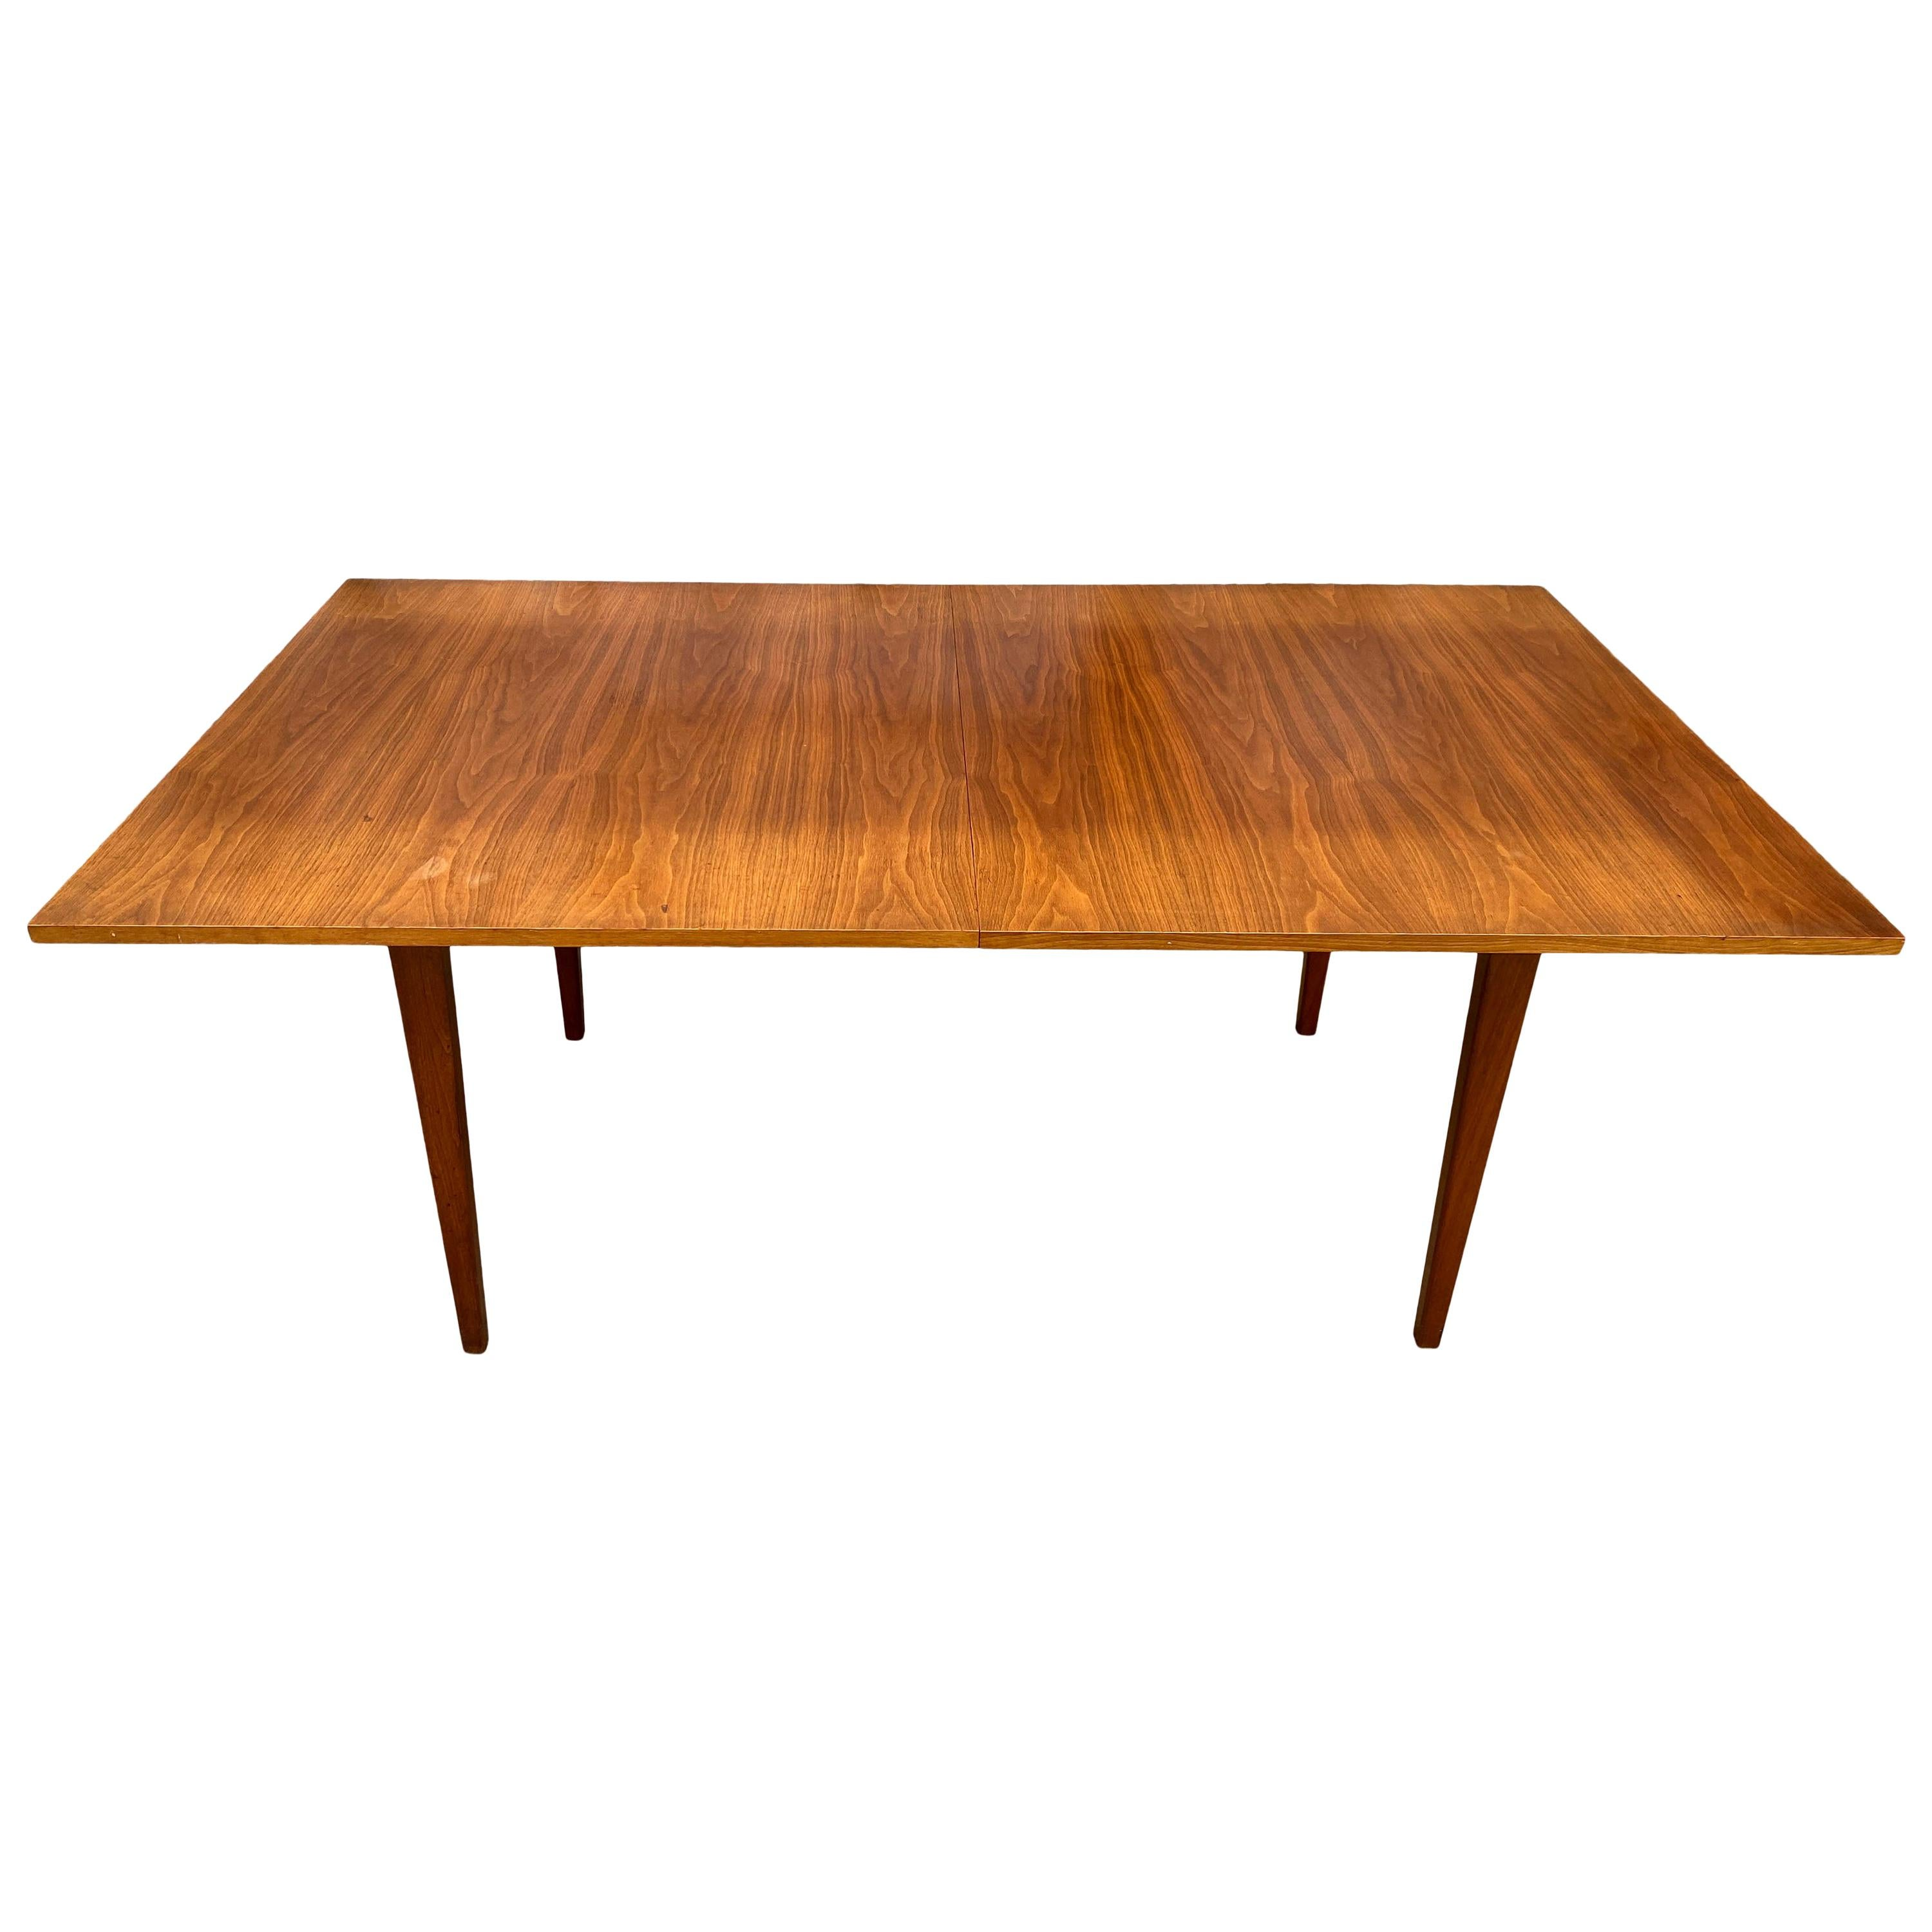 Midcentury George Nelson Herman Miller Expandable Dining Table with '2' Leaves